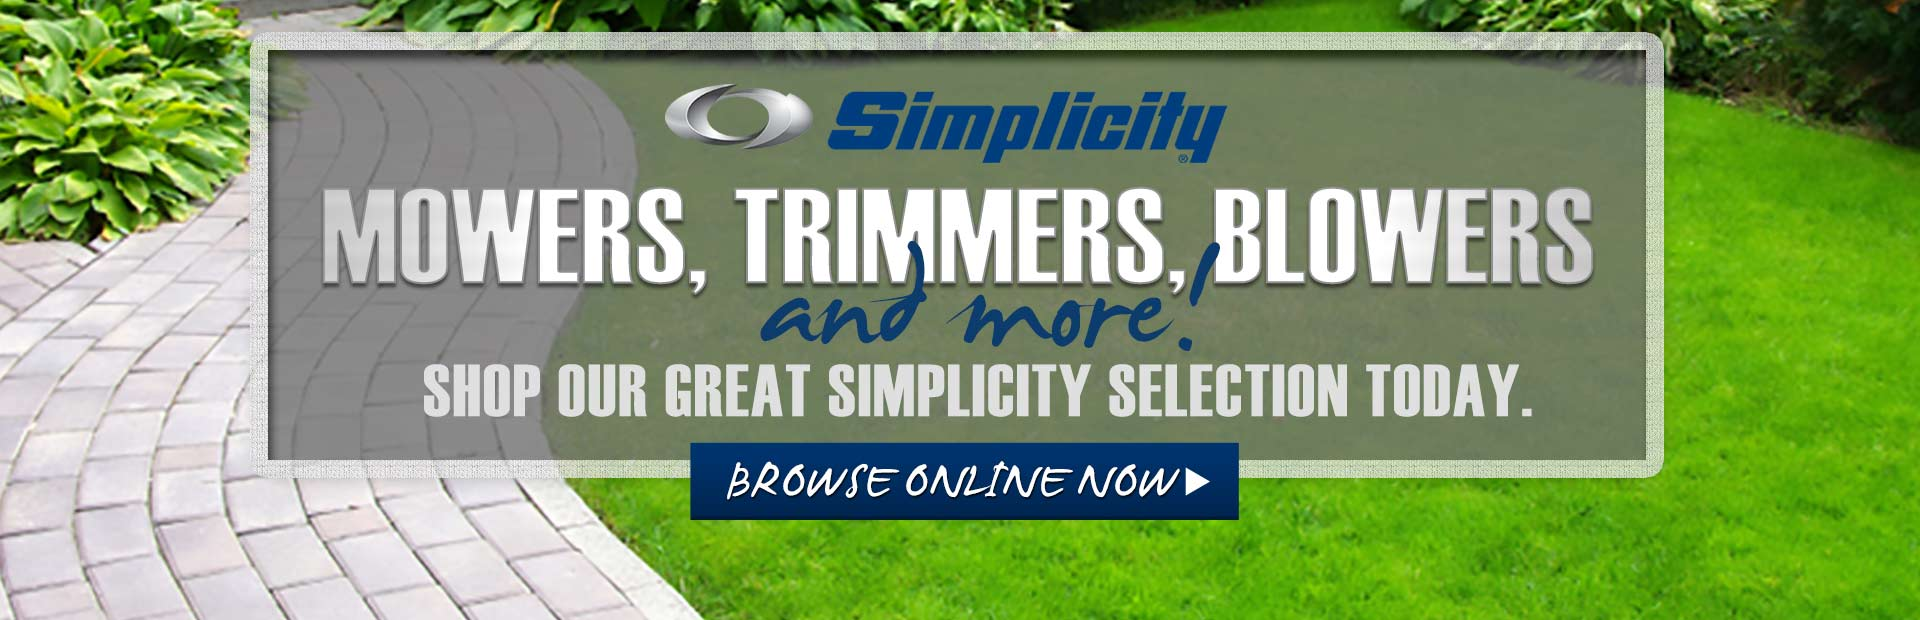 Click here to browse our great Simplicity selection of mowers, trimmers, blowers, and more.